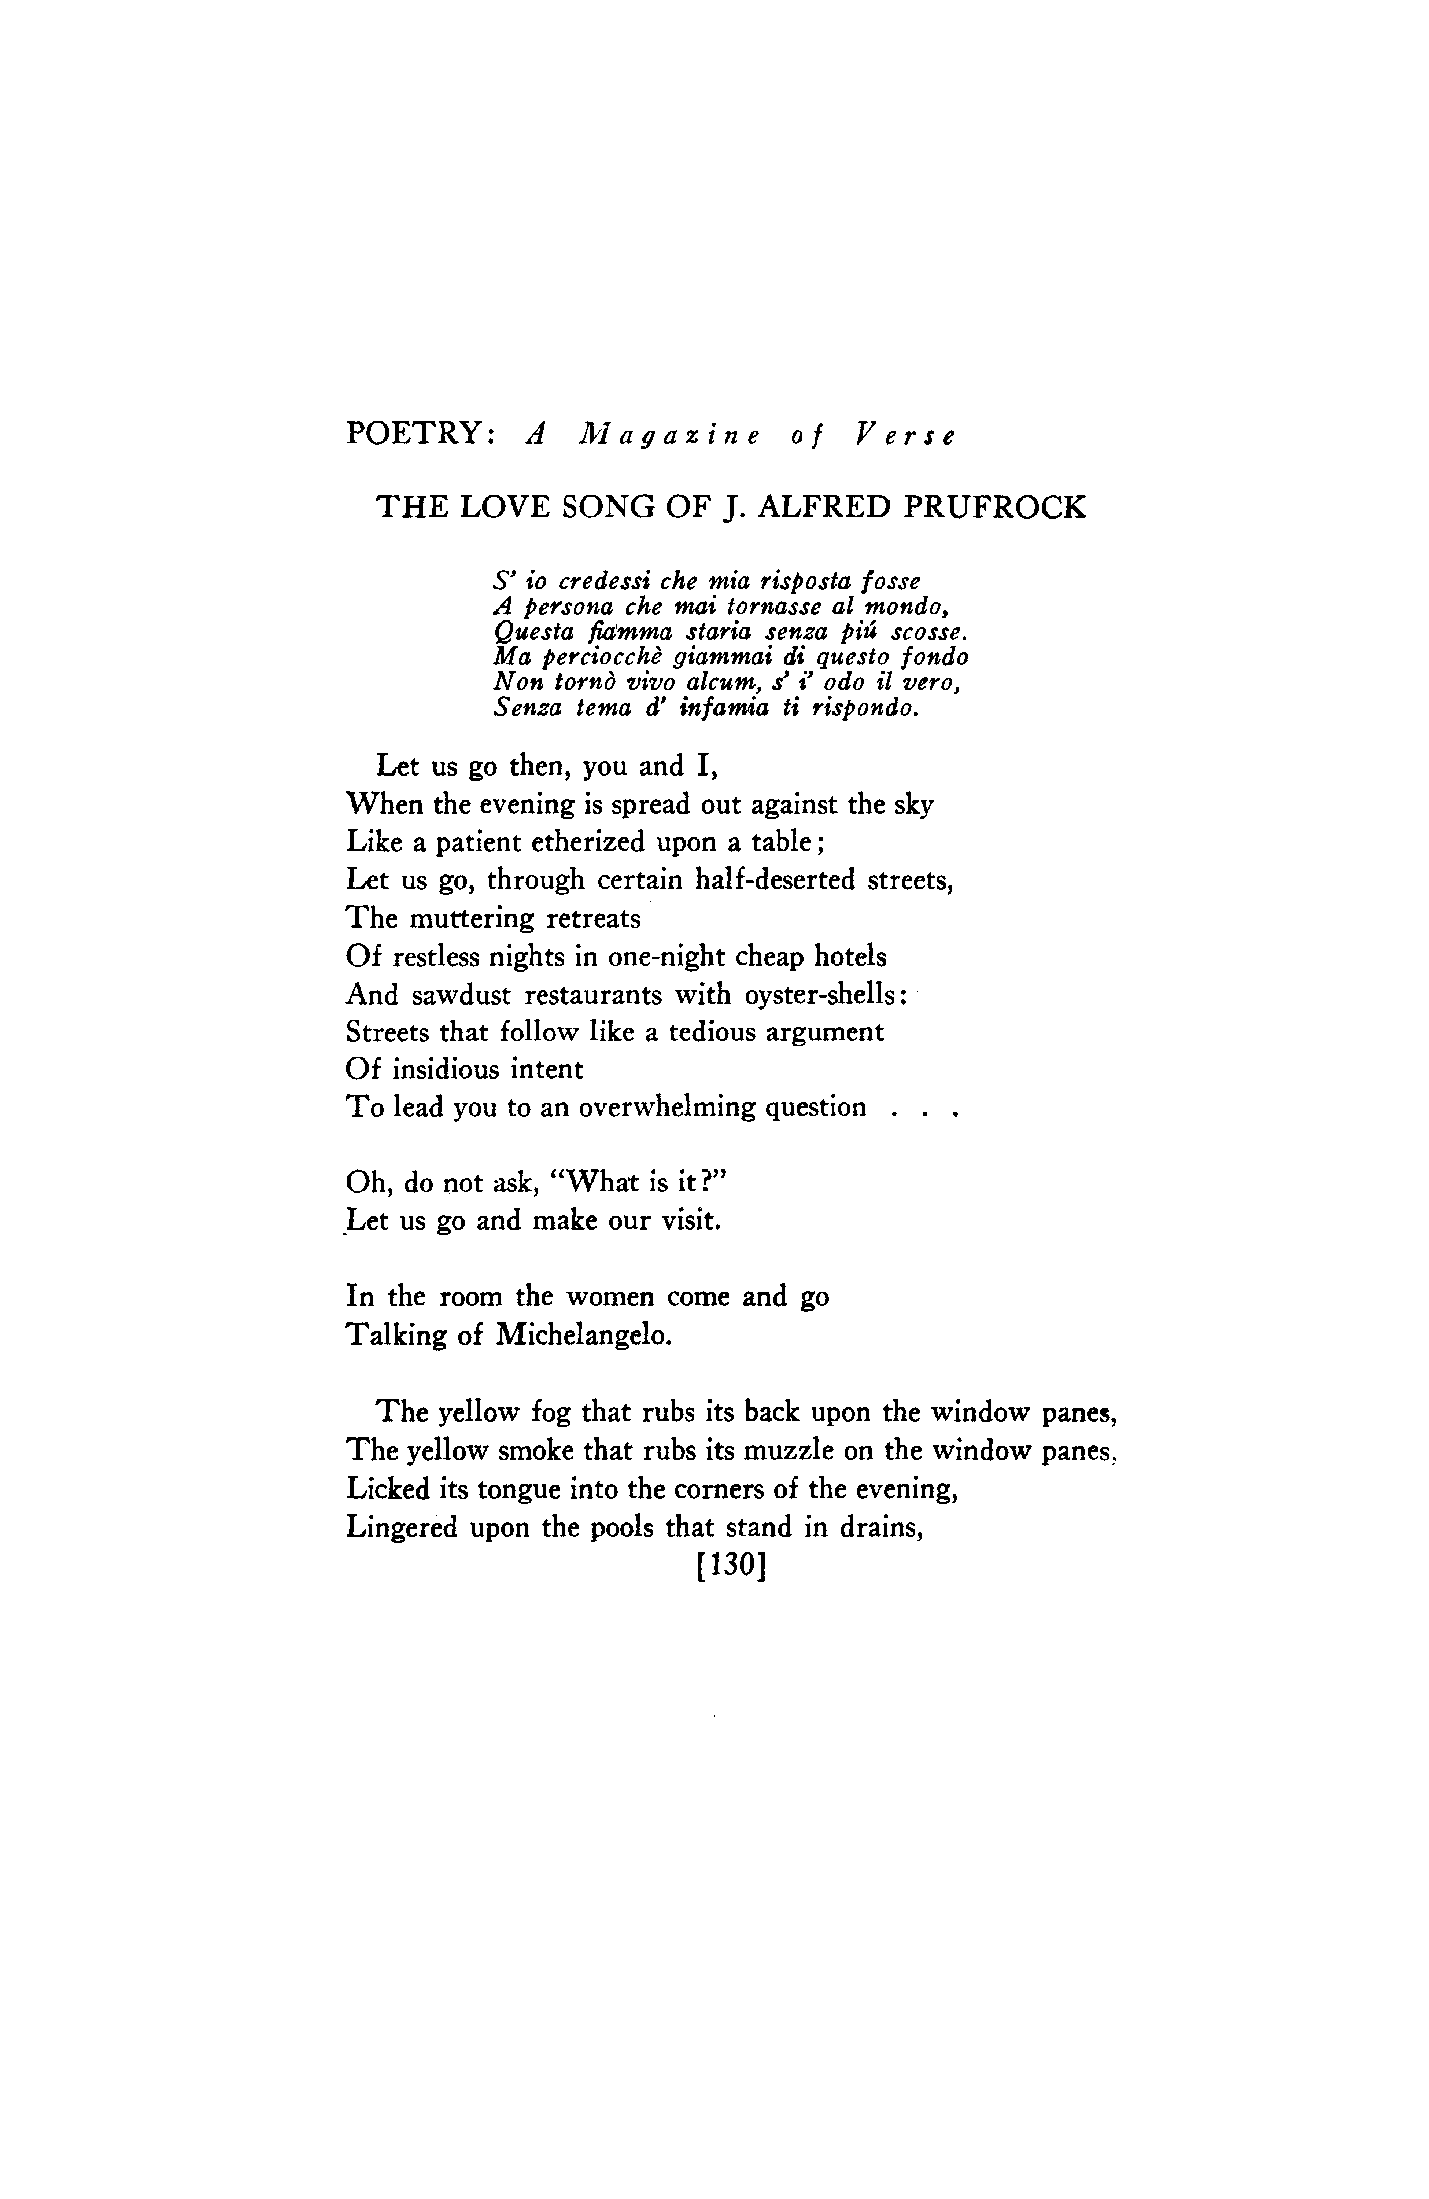 downfall in the poem the lovesong of j alfred prufrock by ts eliot The love song of j alfred prufrock, commonly known as prufrock, is the first professionally published poem by american-born, british poet t s eliot (1888–1965).